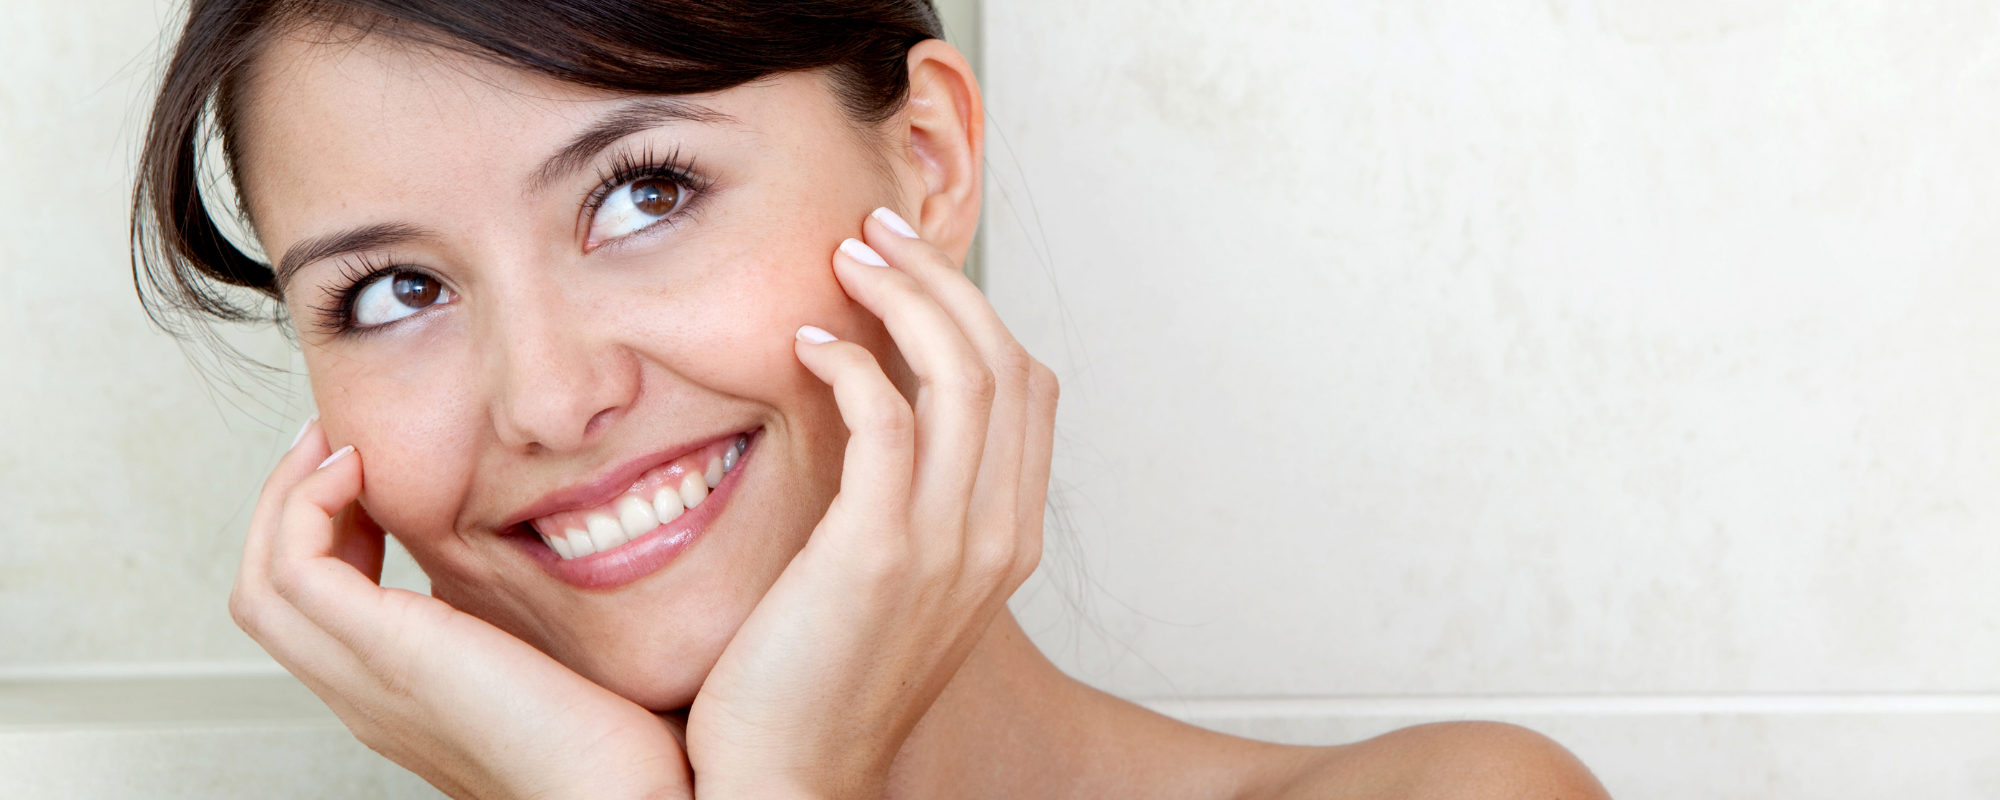 Facial Rejuvenation Treatments - Our MedSpa Facial Options